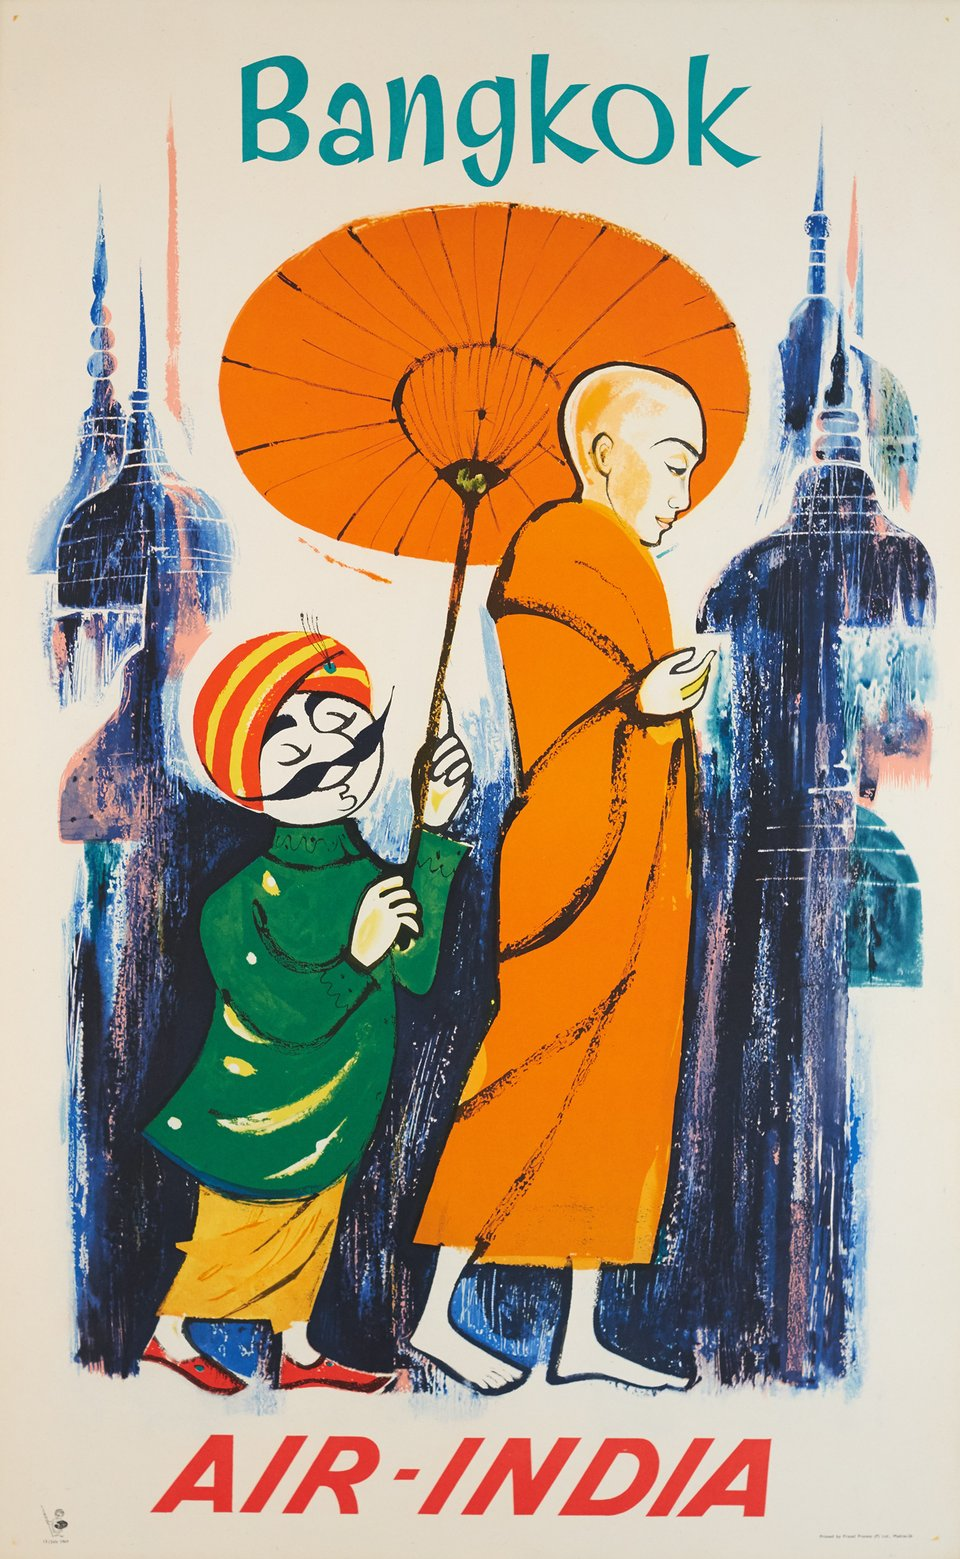 Air-India, Bangkok – Vintage poster – ANONYME – 1969